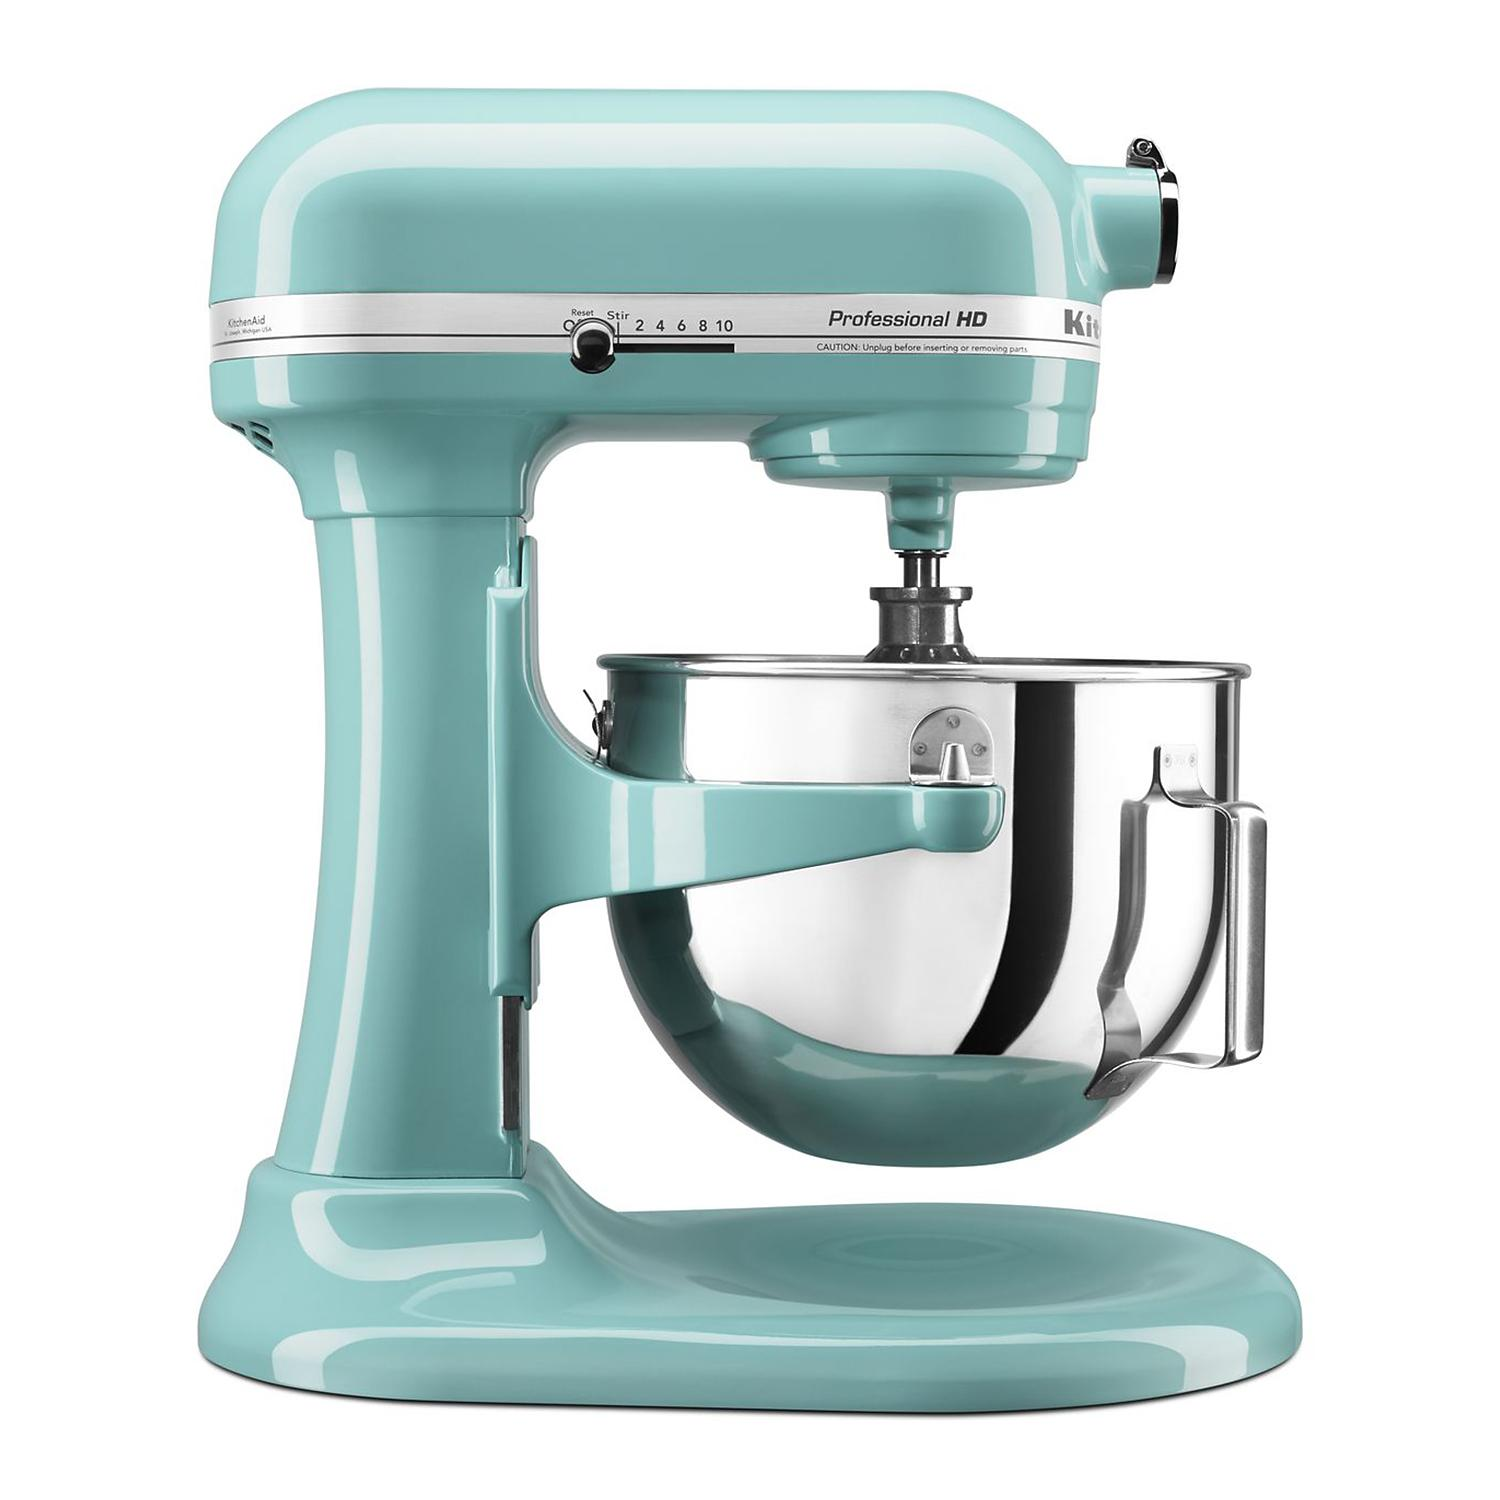 KitchenAid Professional  KG25HOX/MC  5-Quart Heavy-Duty Stand Mixer - Aqua Sky